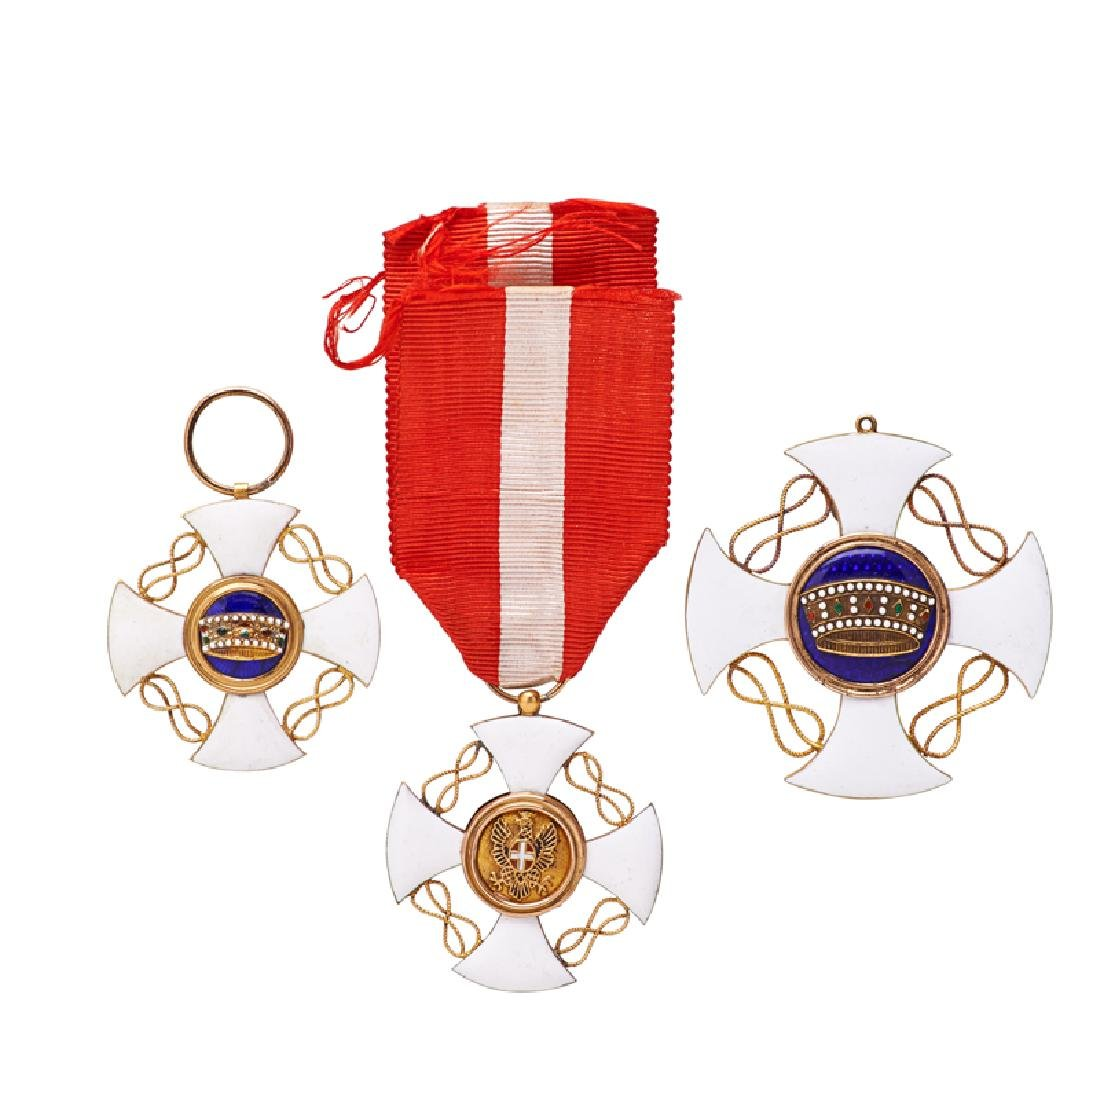 ORDER OF THE CROWN OF ITALY MEDALS